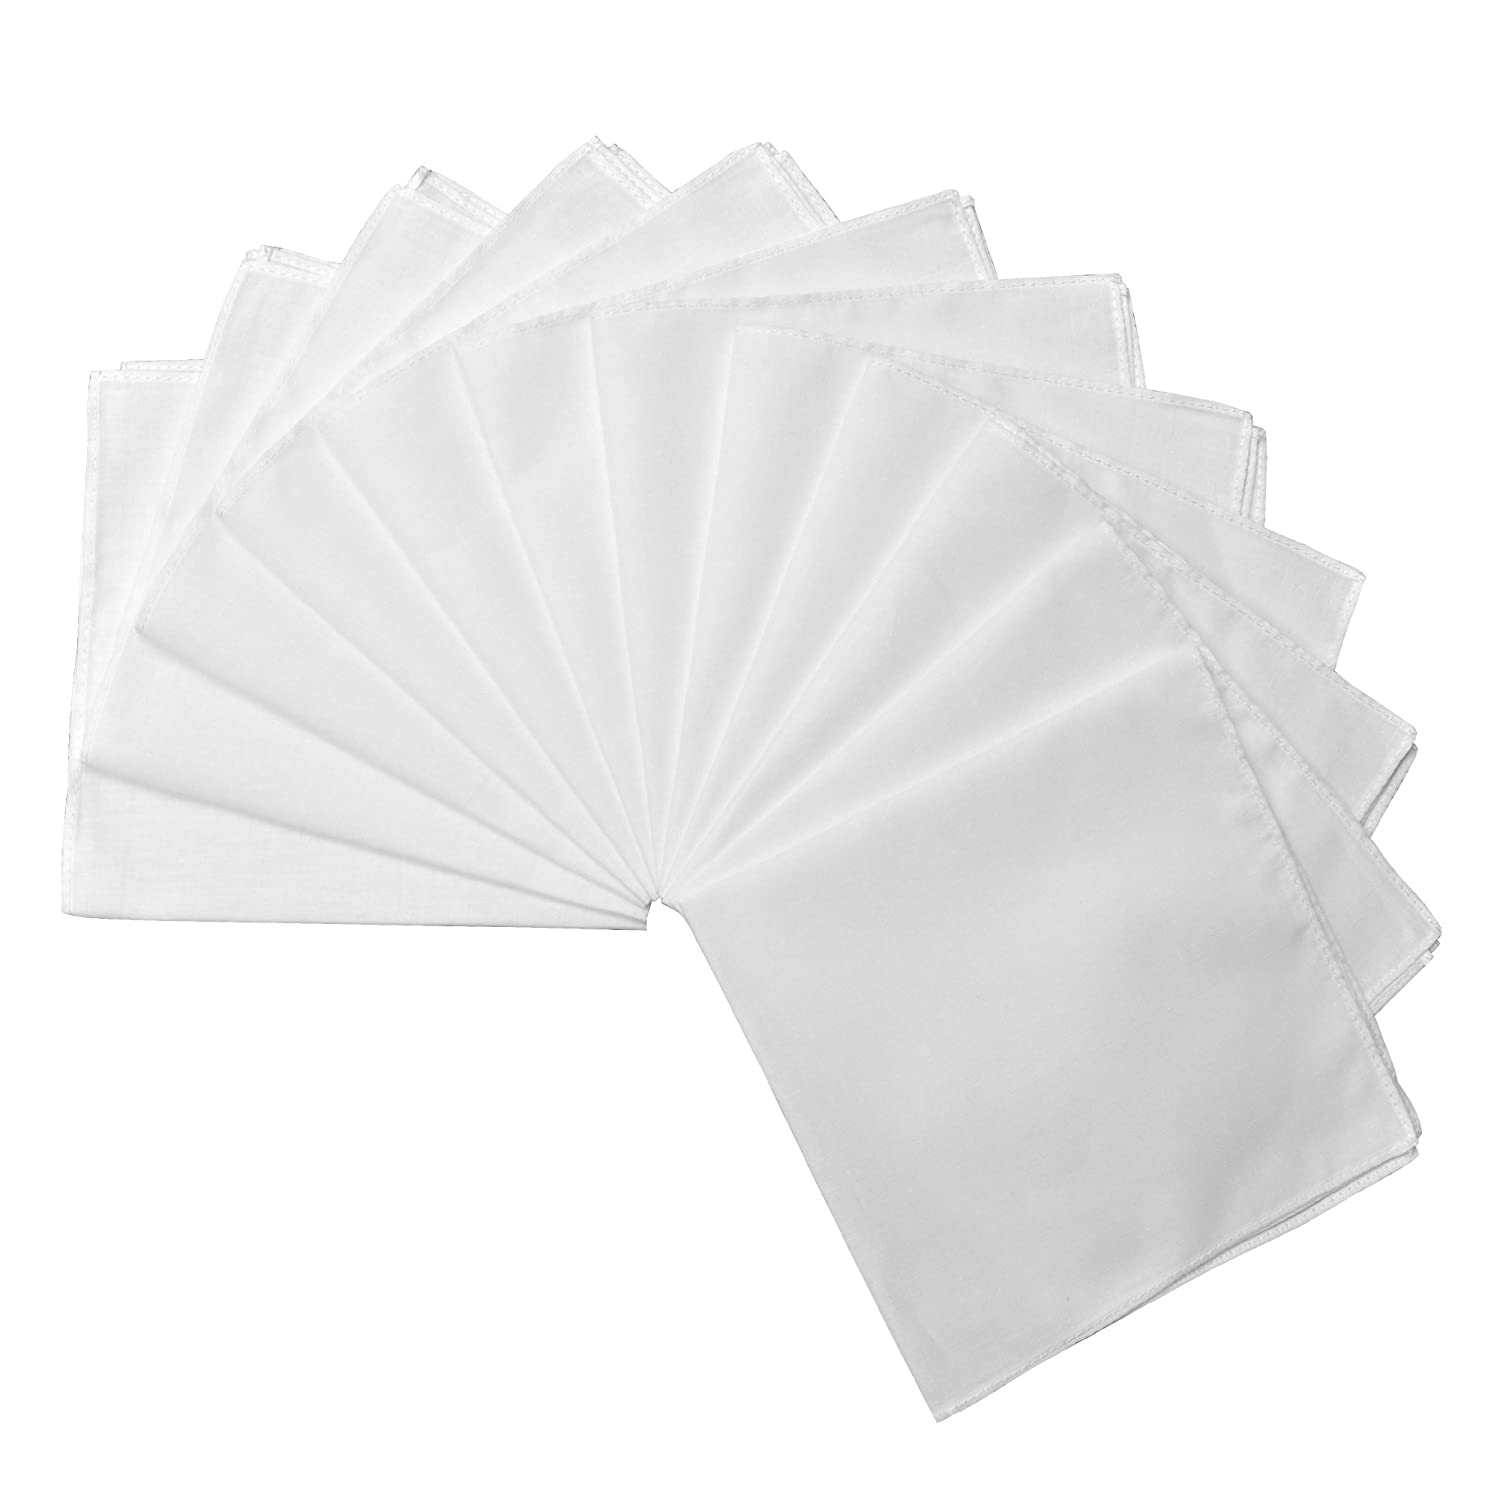 Milesky Solid White Handkerchiefs Premium 60S Cotton Unisex 11 x 11 inch (Pack of 12)